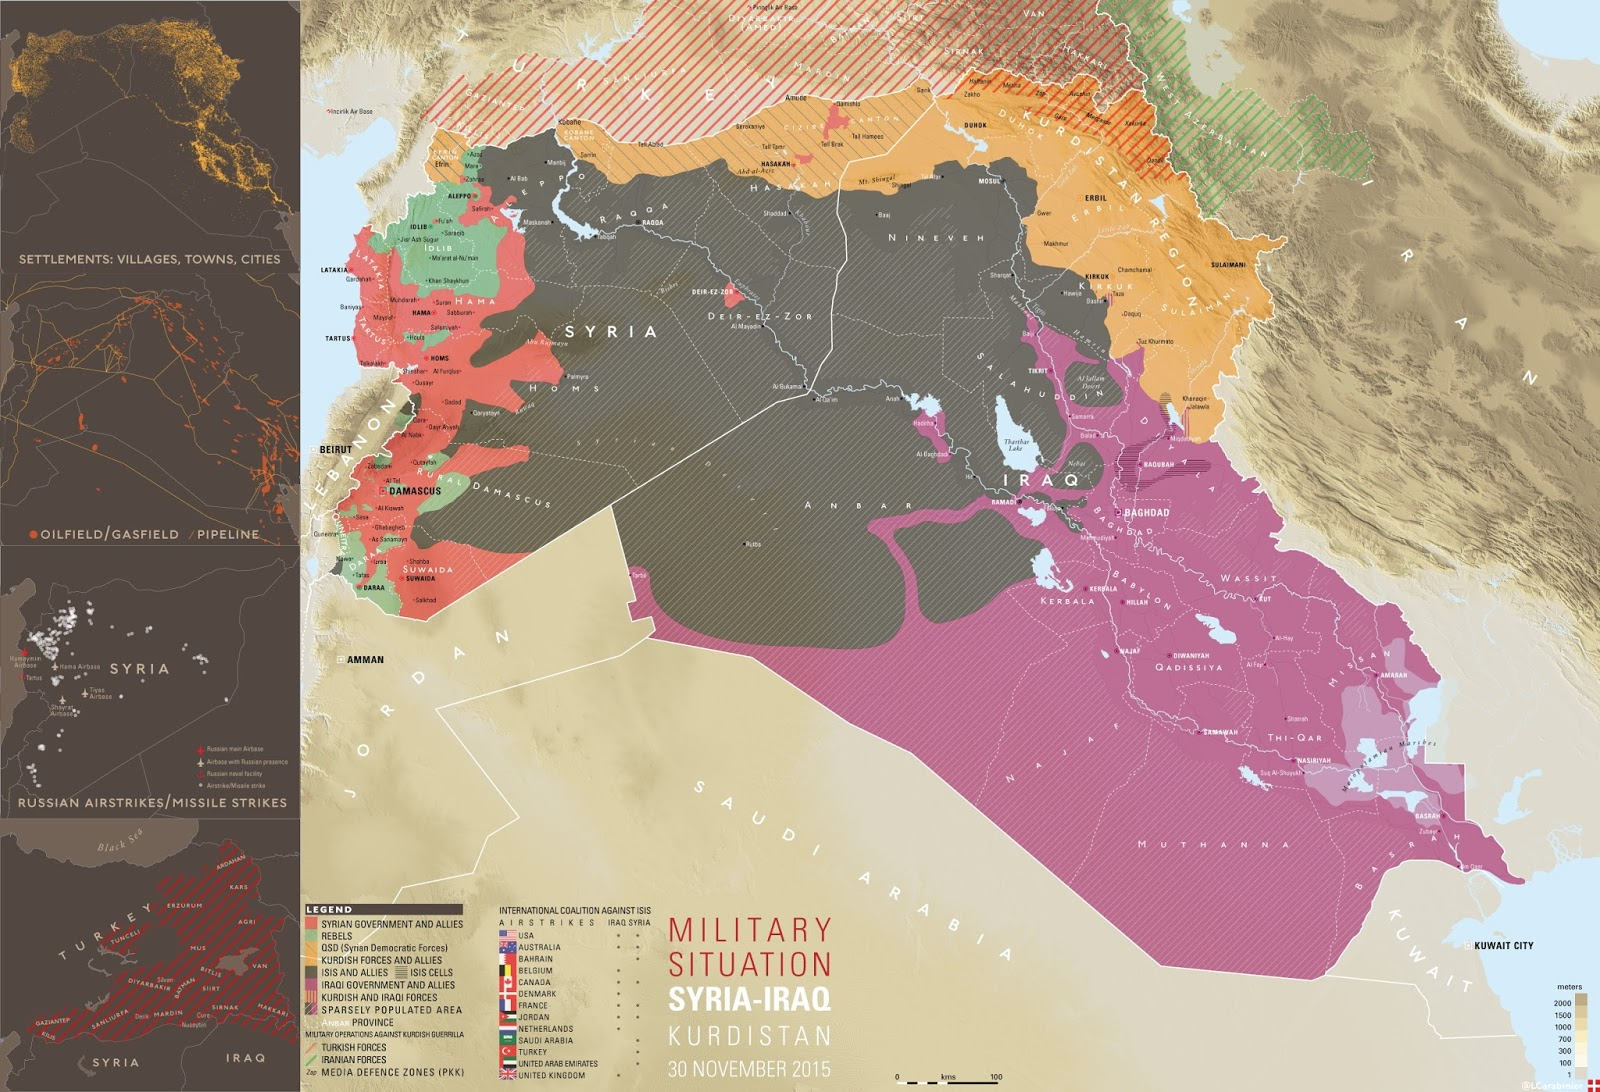 Military situation in Syria, Iraq & Kurdistan